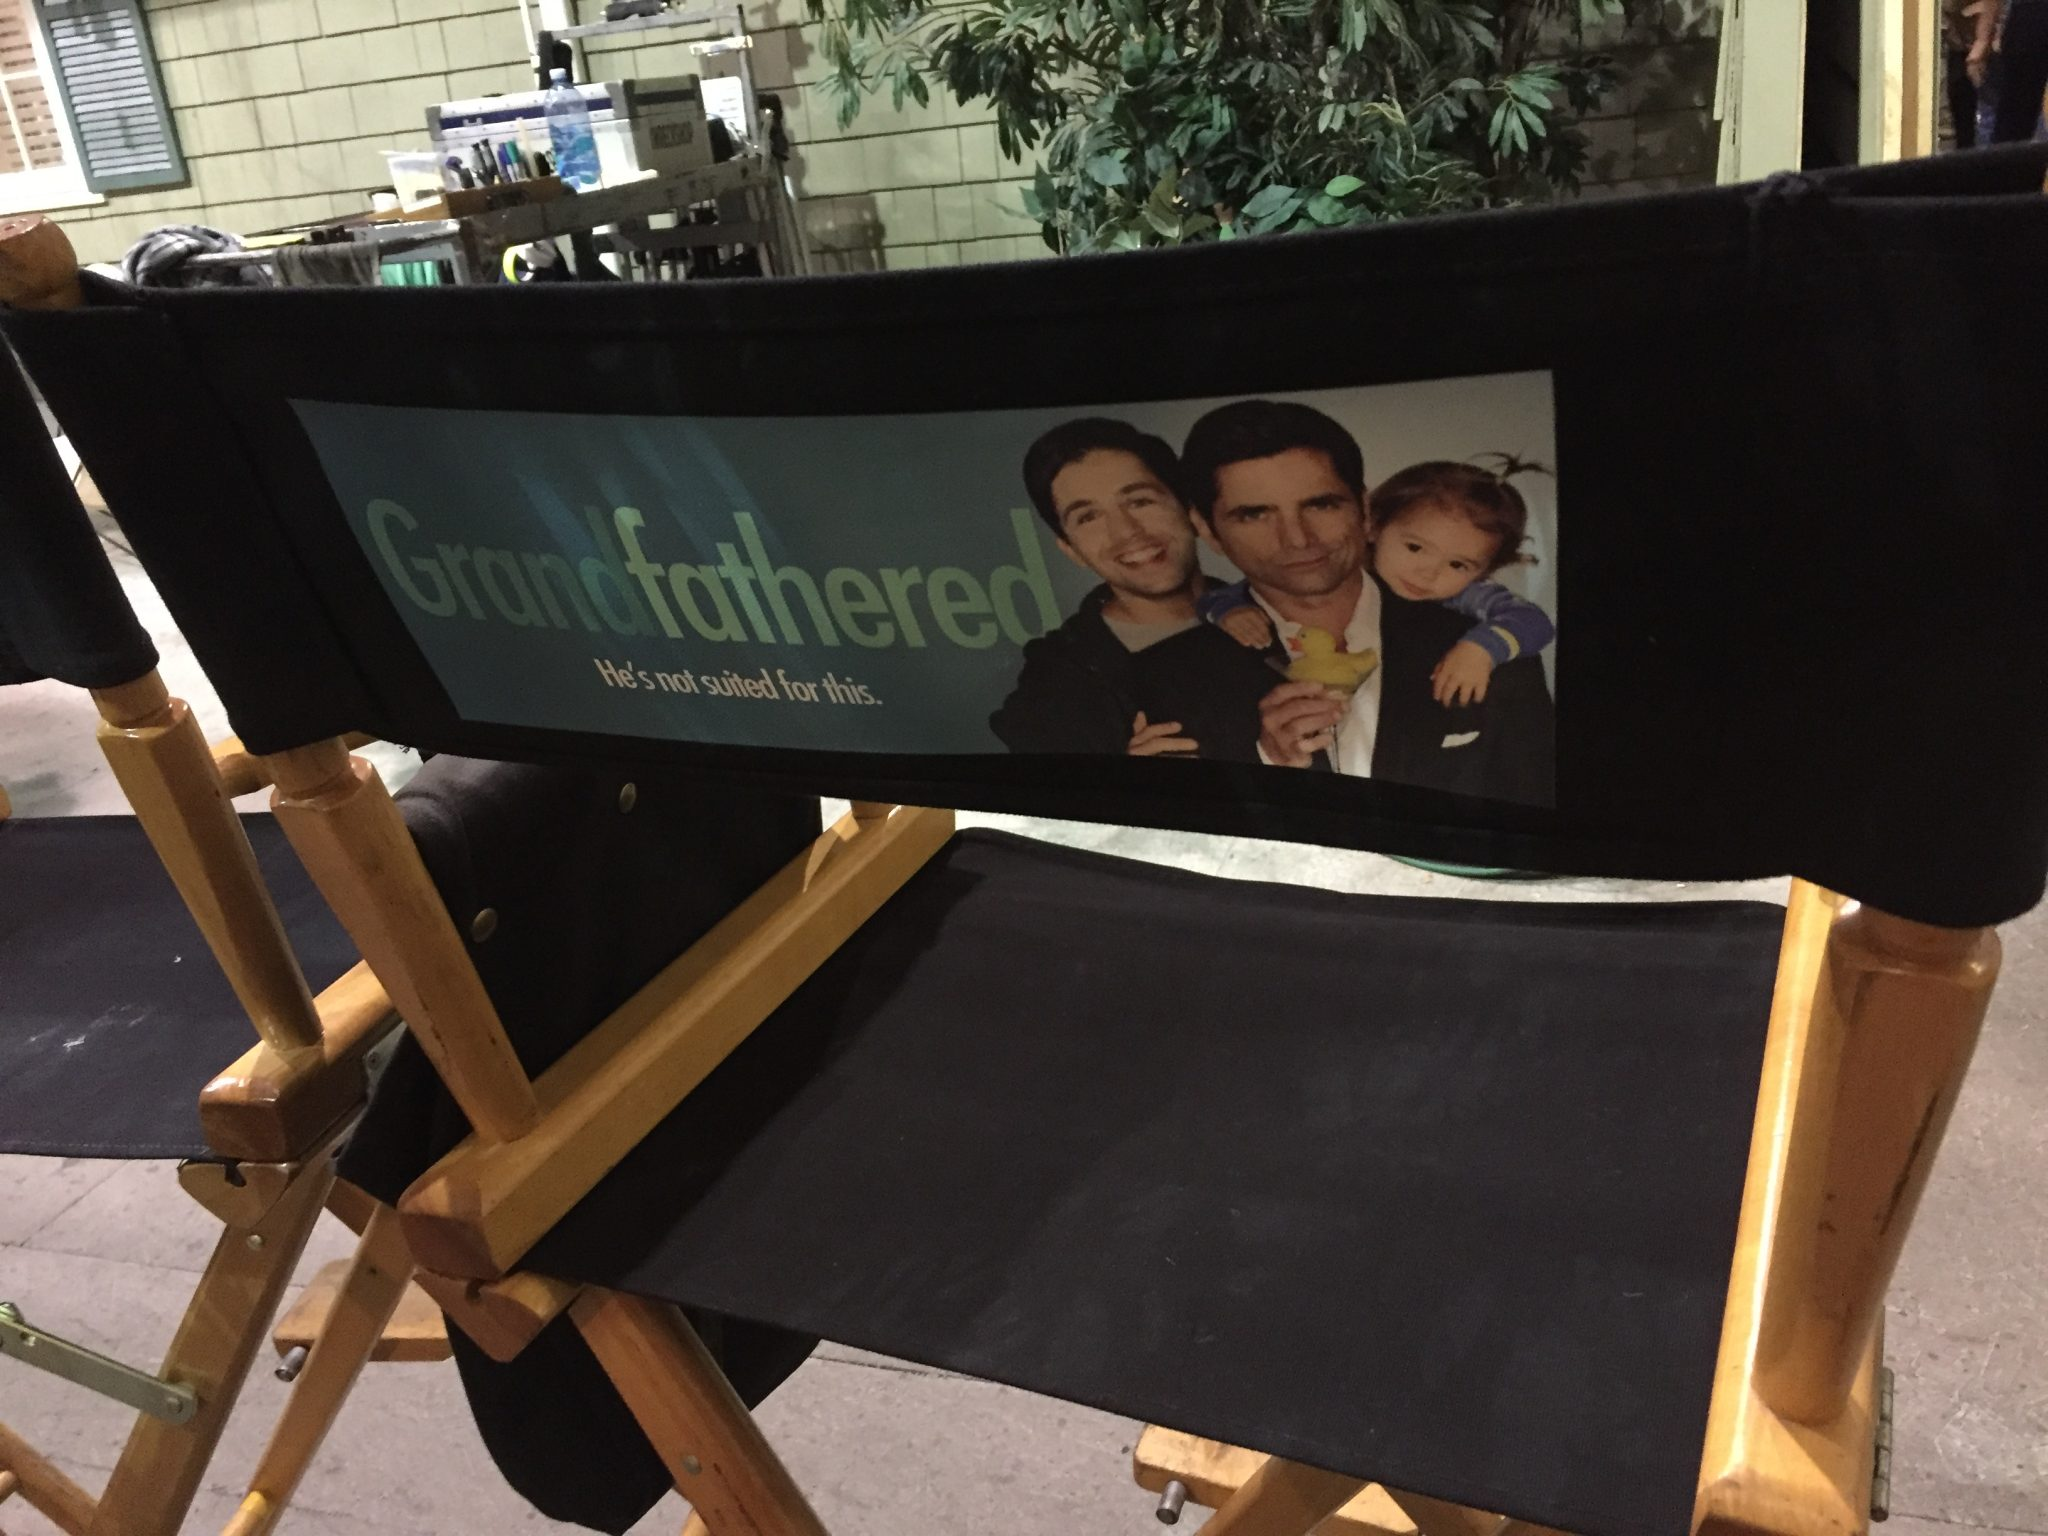 My Cool Experience On Set Of 'Grandfathered' With John Stamos